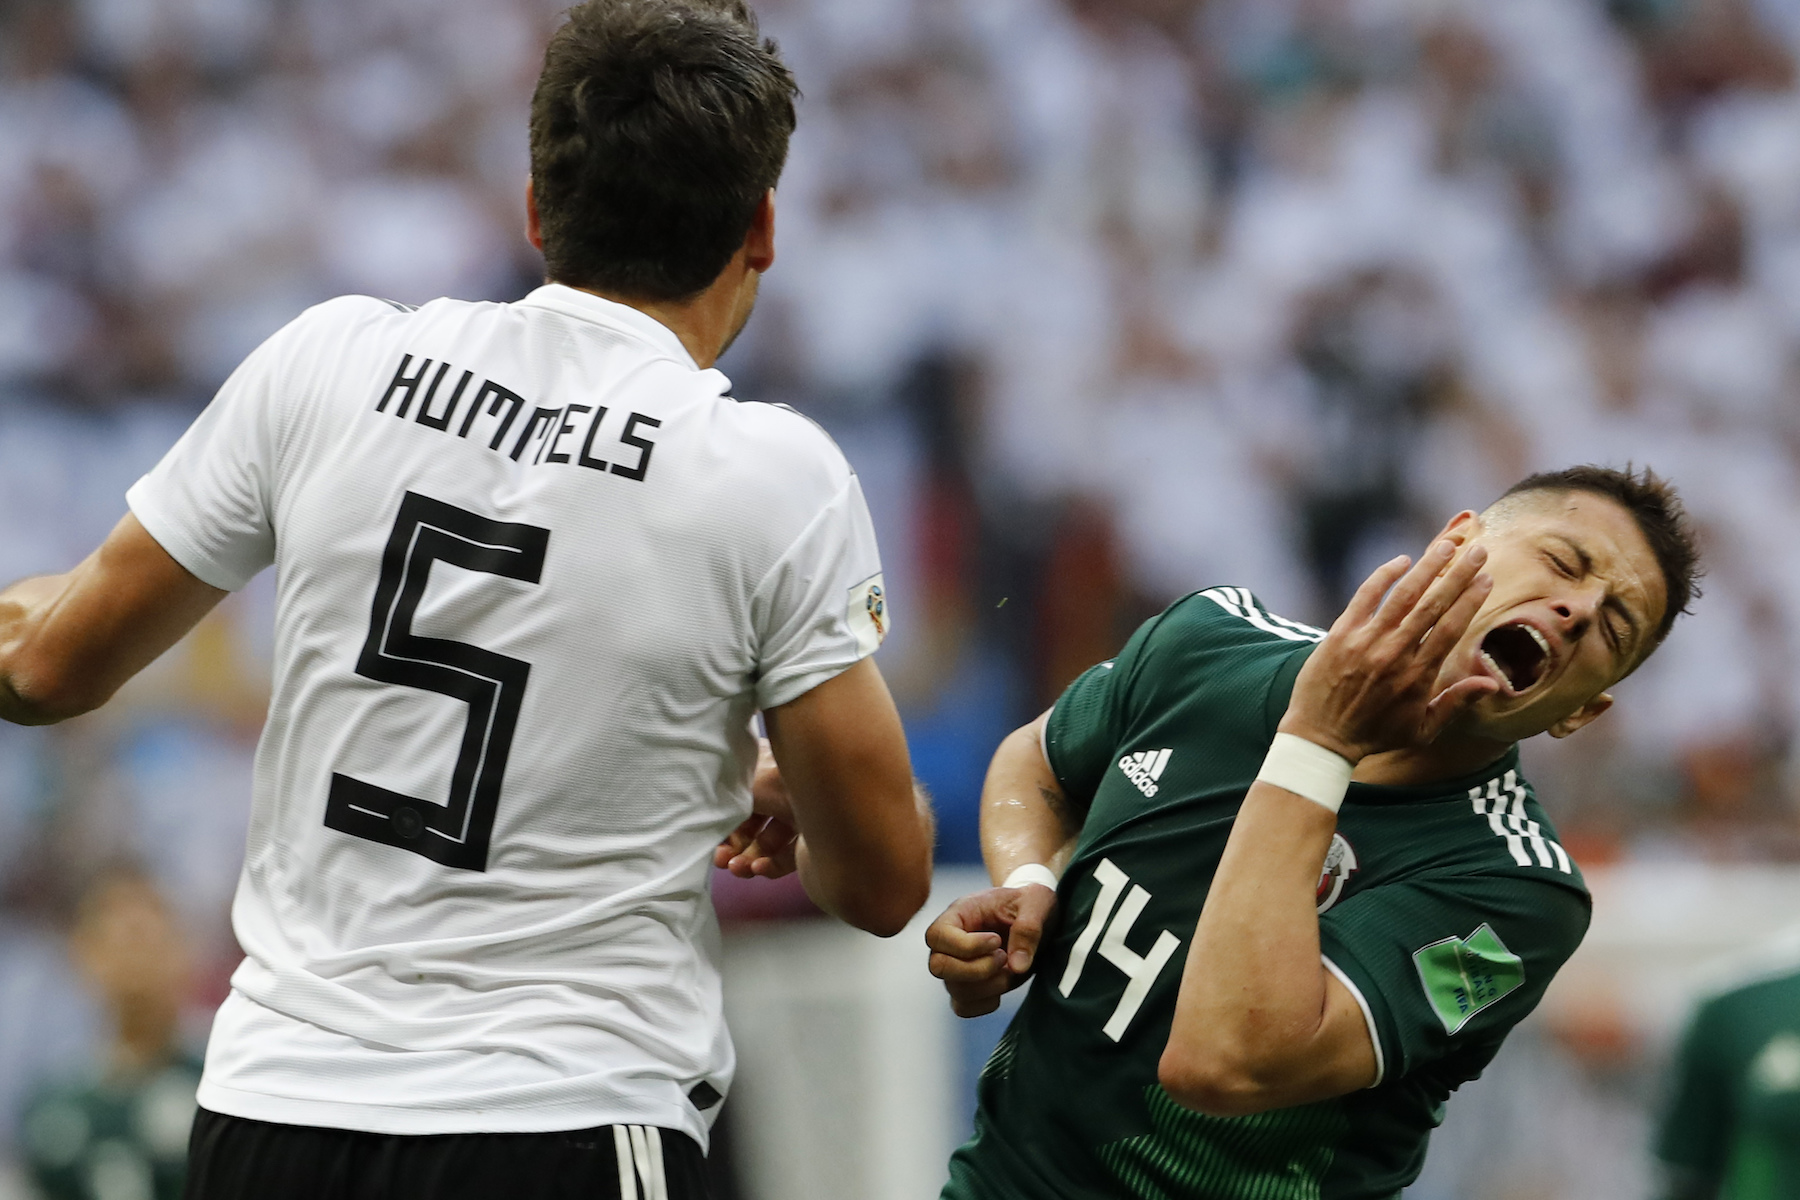 <div class='meta'><div class='origin-logo' data-origin='AP'></div><span class='caption-text' data-credit='AP Photo/Antonio Calanni'>Mexico's Javier Hernandez, right, gestures as competes for the ball with Germany's Mats Hummels during the group F match between Germany and Mexico at the 2018 soccer World Cup.</span></div>